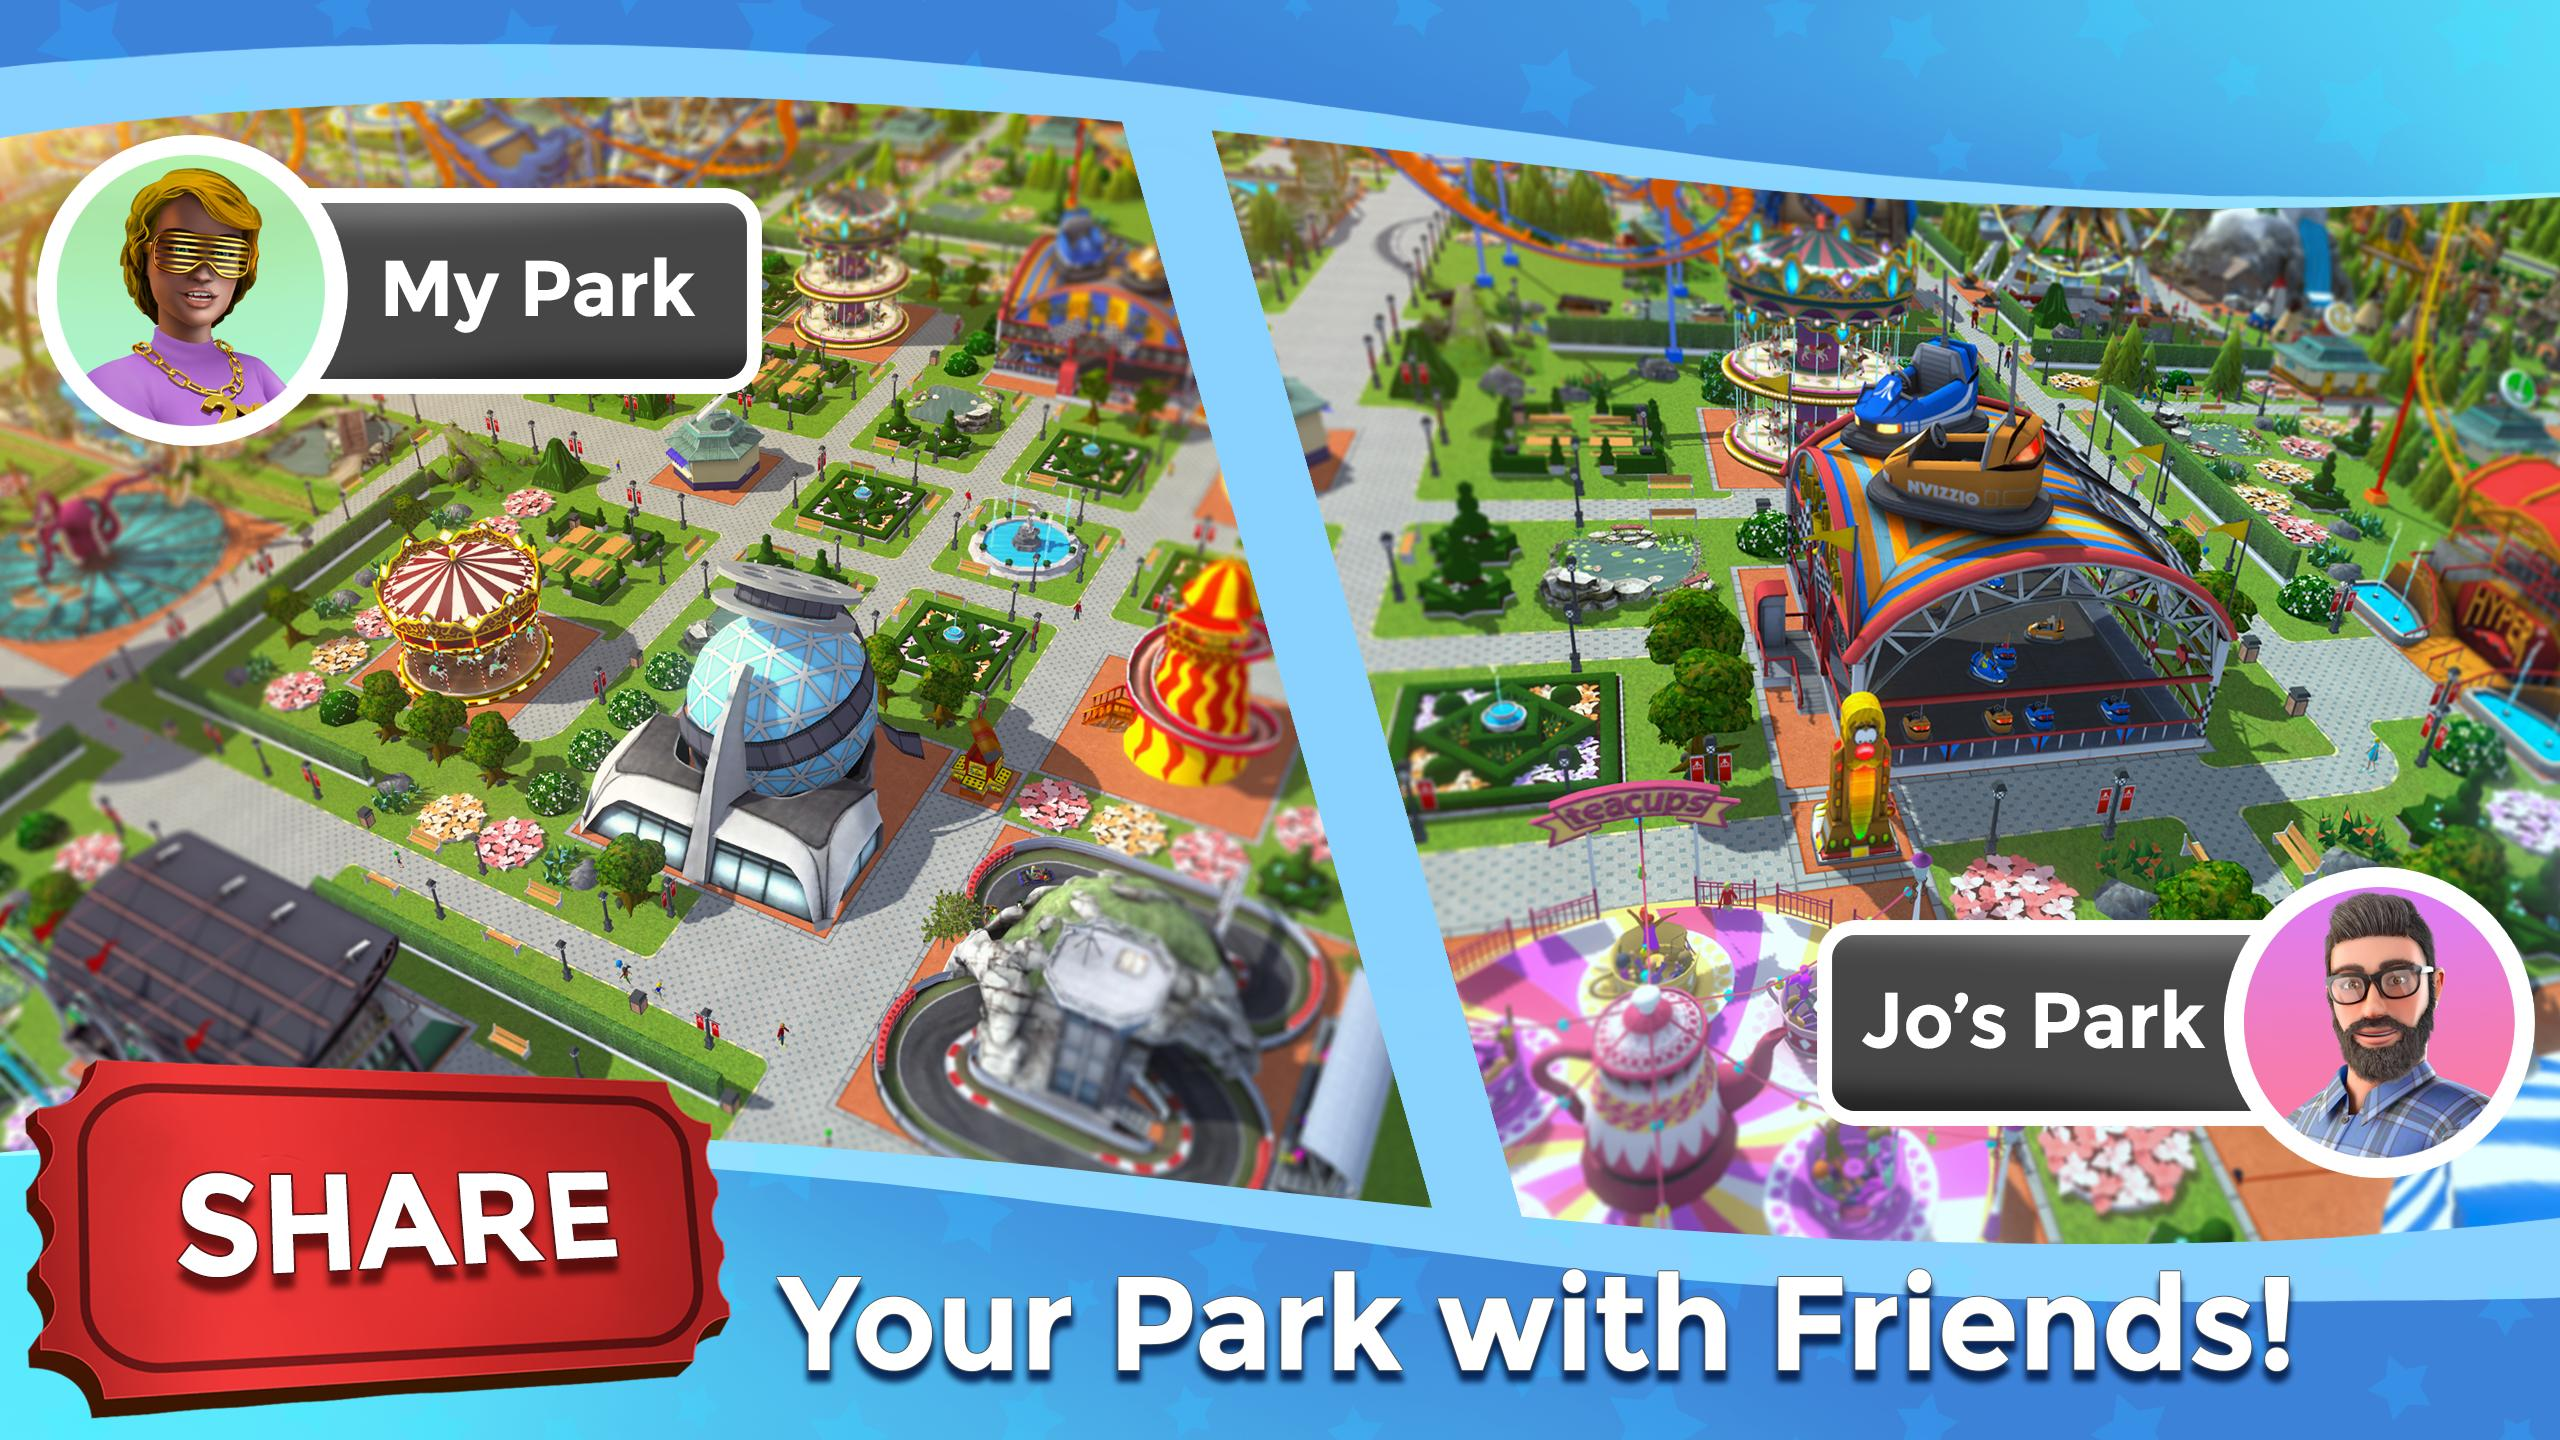 RollerCoaster Tycoon Touch - Build your Theme Park for Android - APK